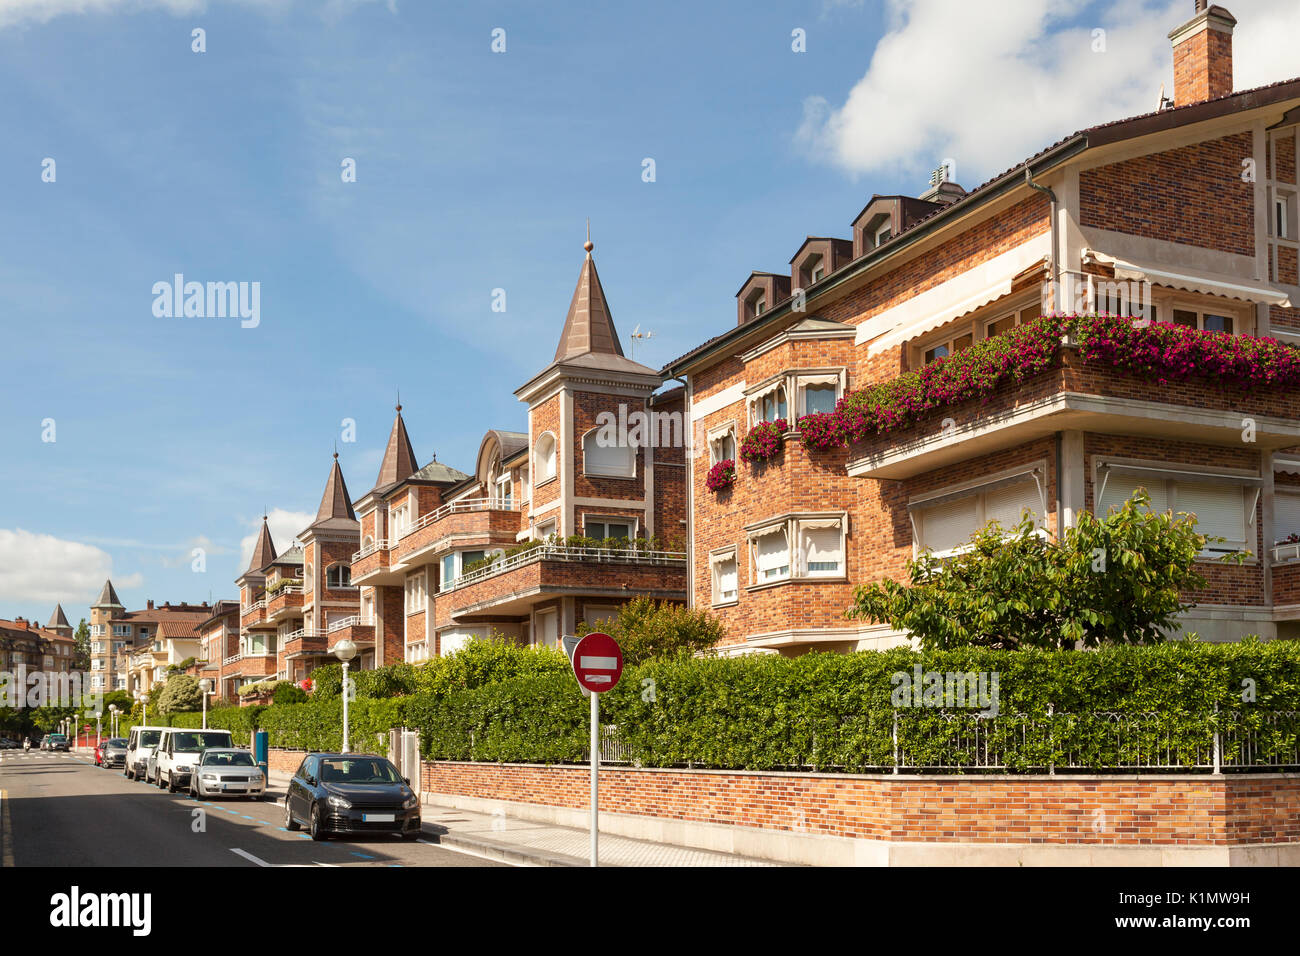 Residential street in the city of San Sebastian, Donostia. Basque country, Spain - Stock Image